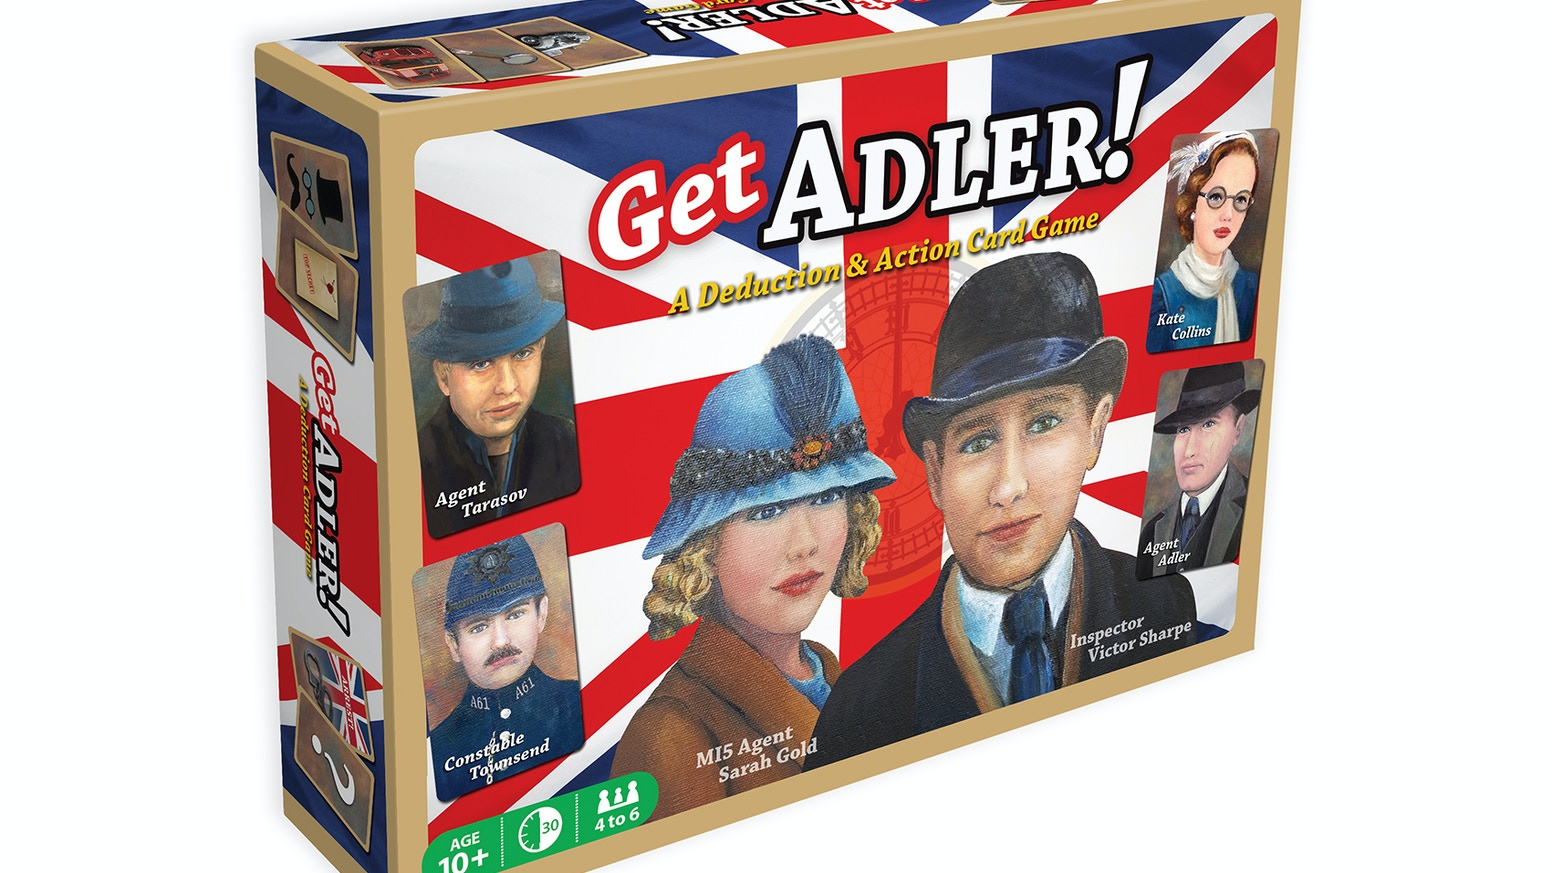 Get Adler! is a 4 - 6 player social deduction card game. This quick & fun hidden identity game is set in London, England - 1937